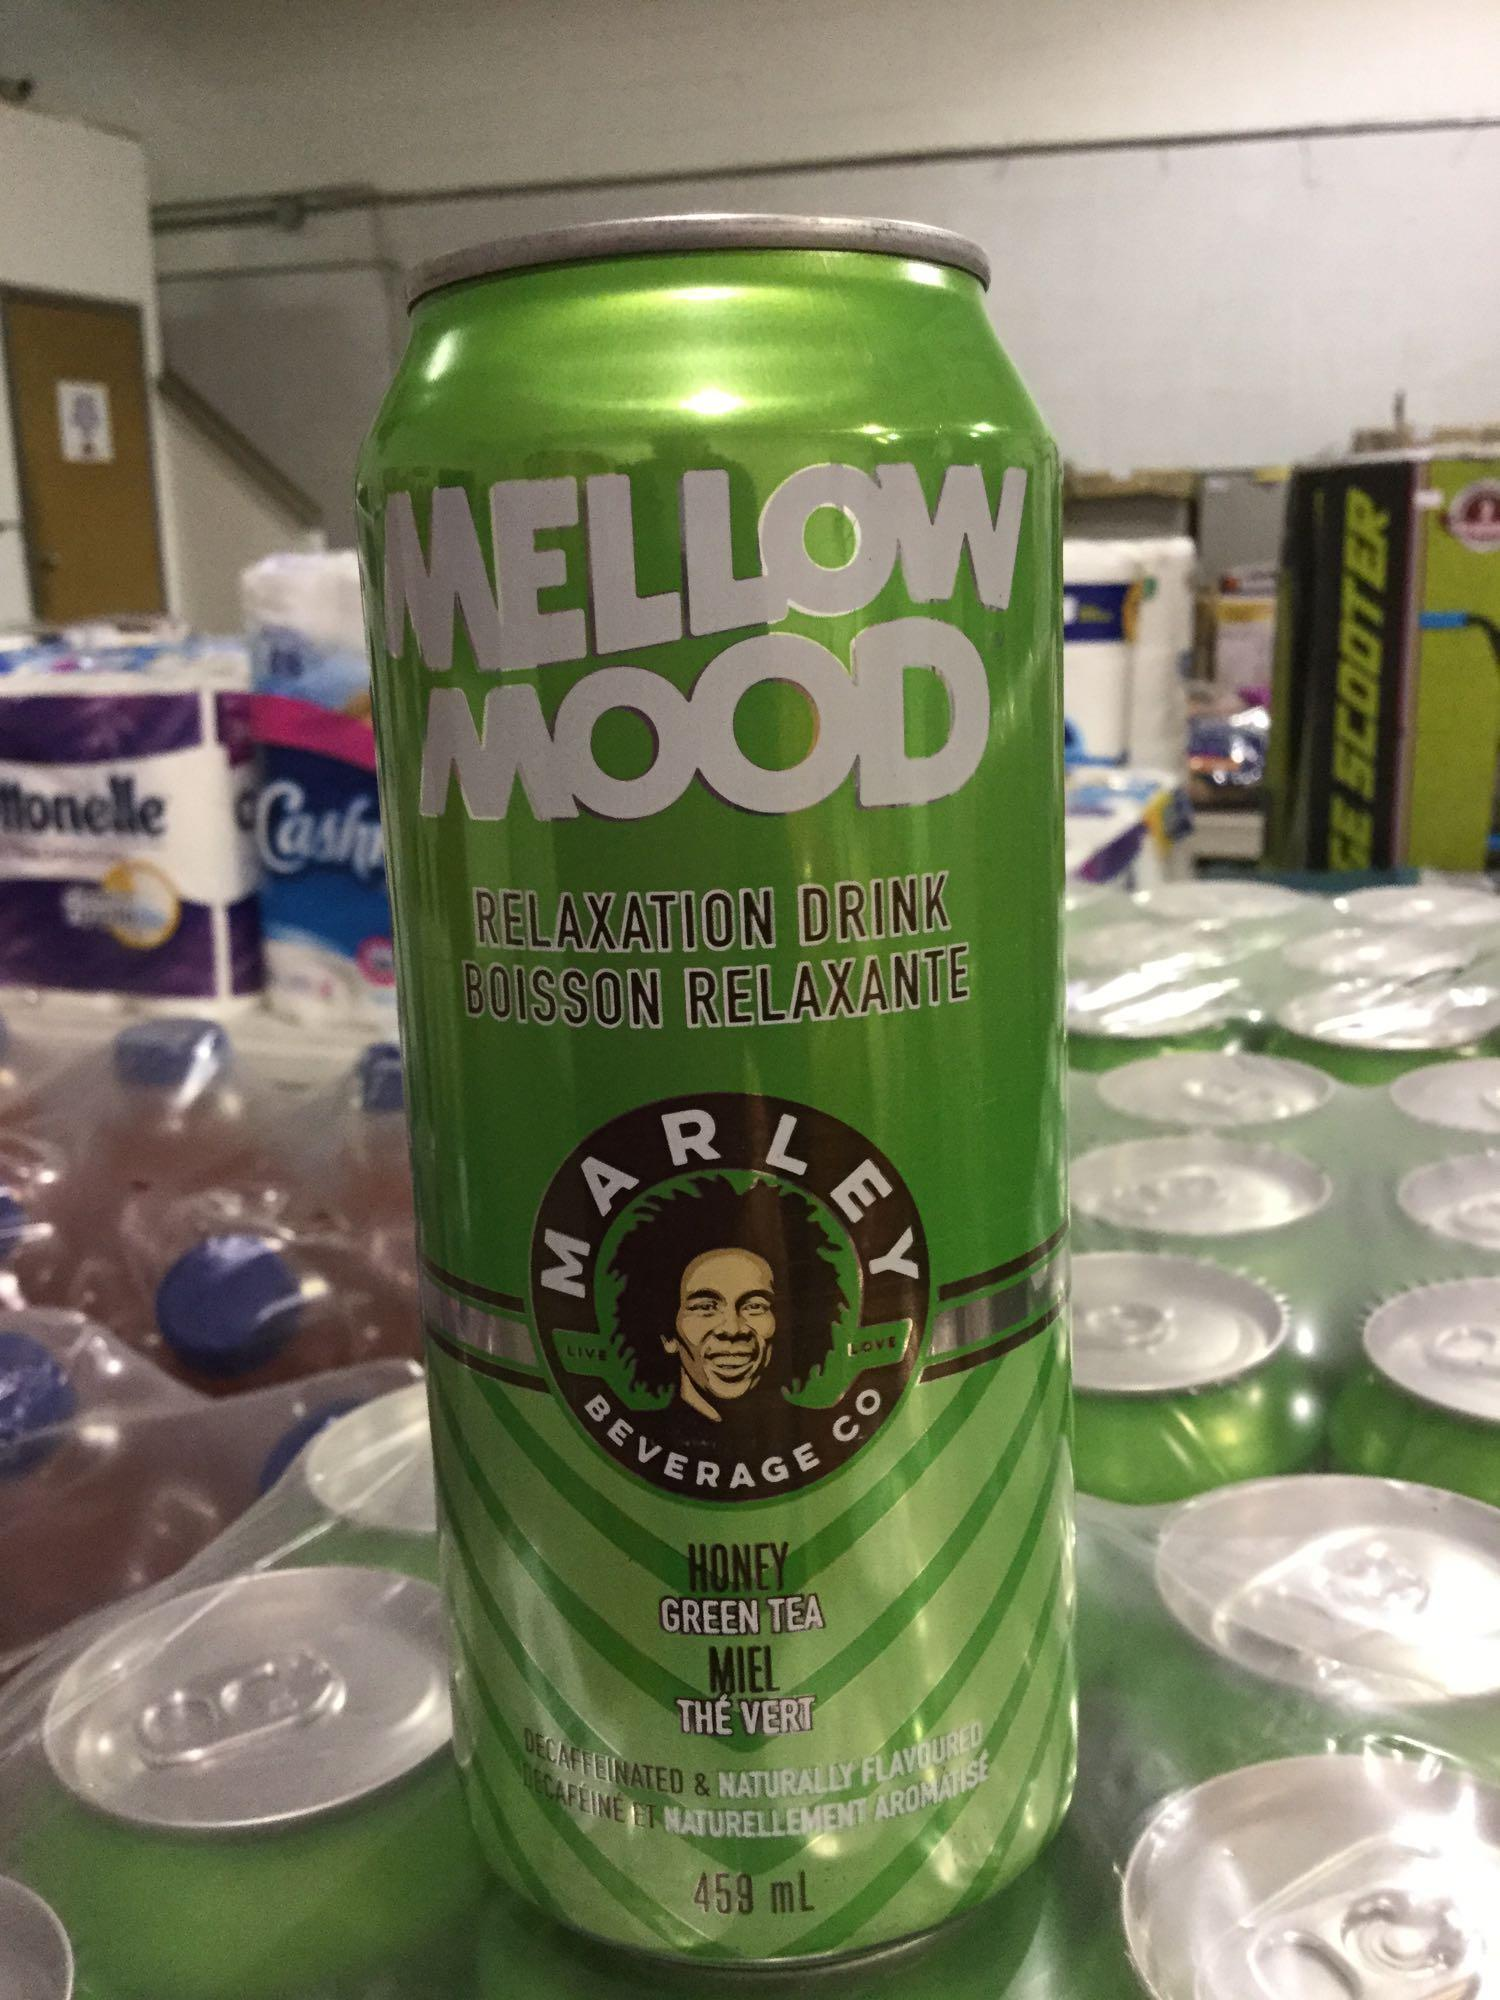 Lot 40 - Case of 12 x 459 mL Mellow Mood Relaxation Drink - Marley Beverage Co. - Honey Green Tea